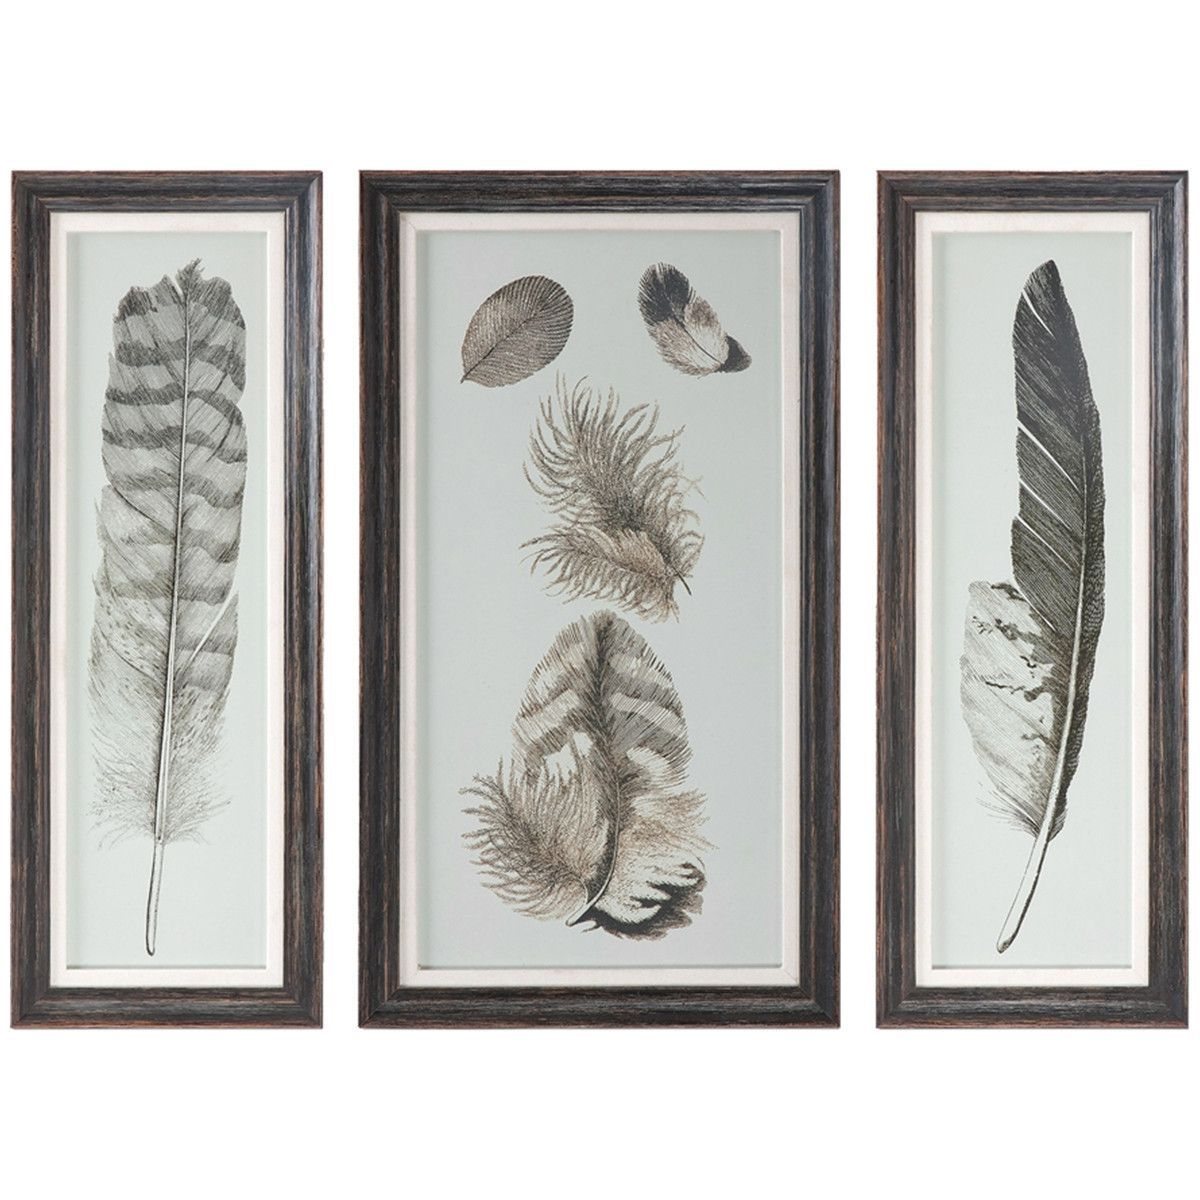 Uttermost Feather Study Distressed Black Artwork Set of 3